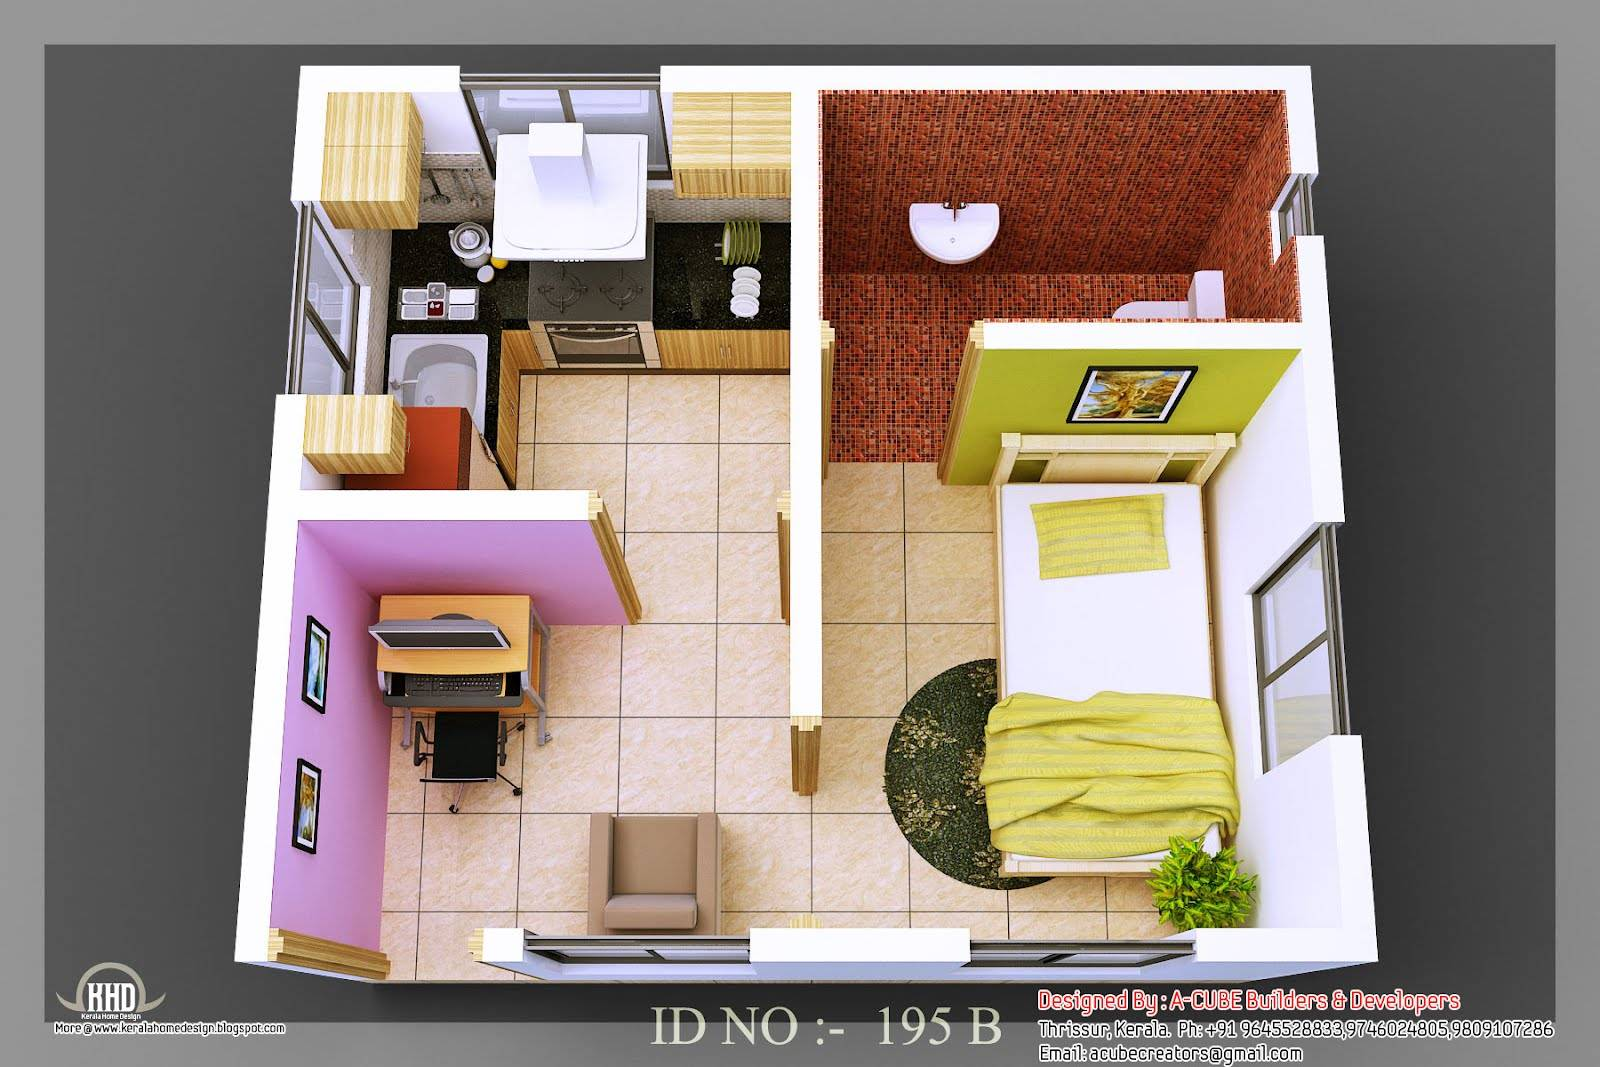 Magnificent Small House Plan Stunning Of Late Small House Plans With Loft Largest Home Design Picture Inspirations Pitcheantrous